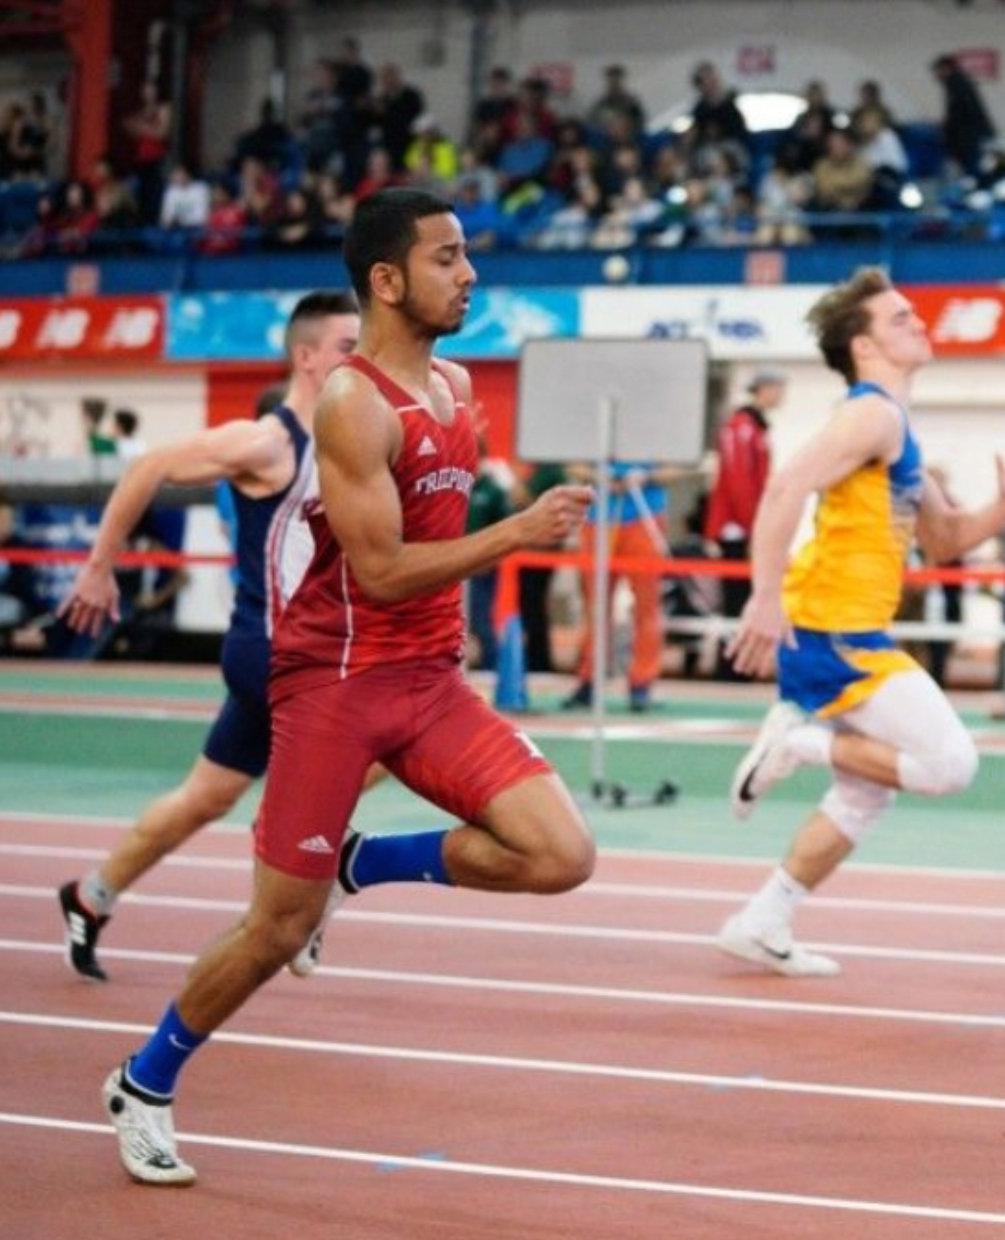 Justin Budhu runs track at Freeport High School and has participated in the 2018 Junior Olympics held in Iowa.